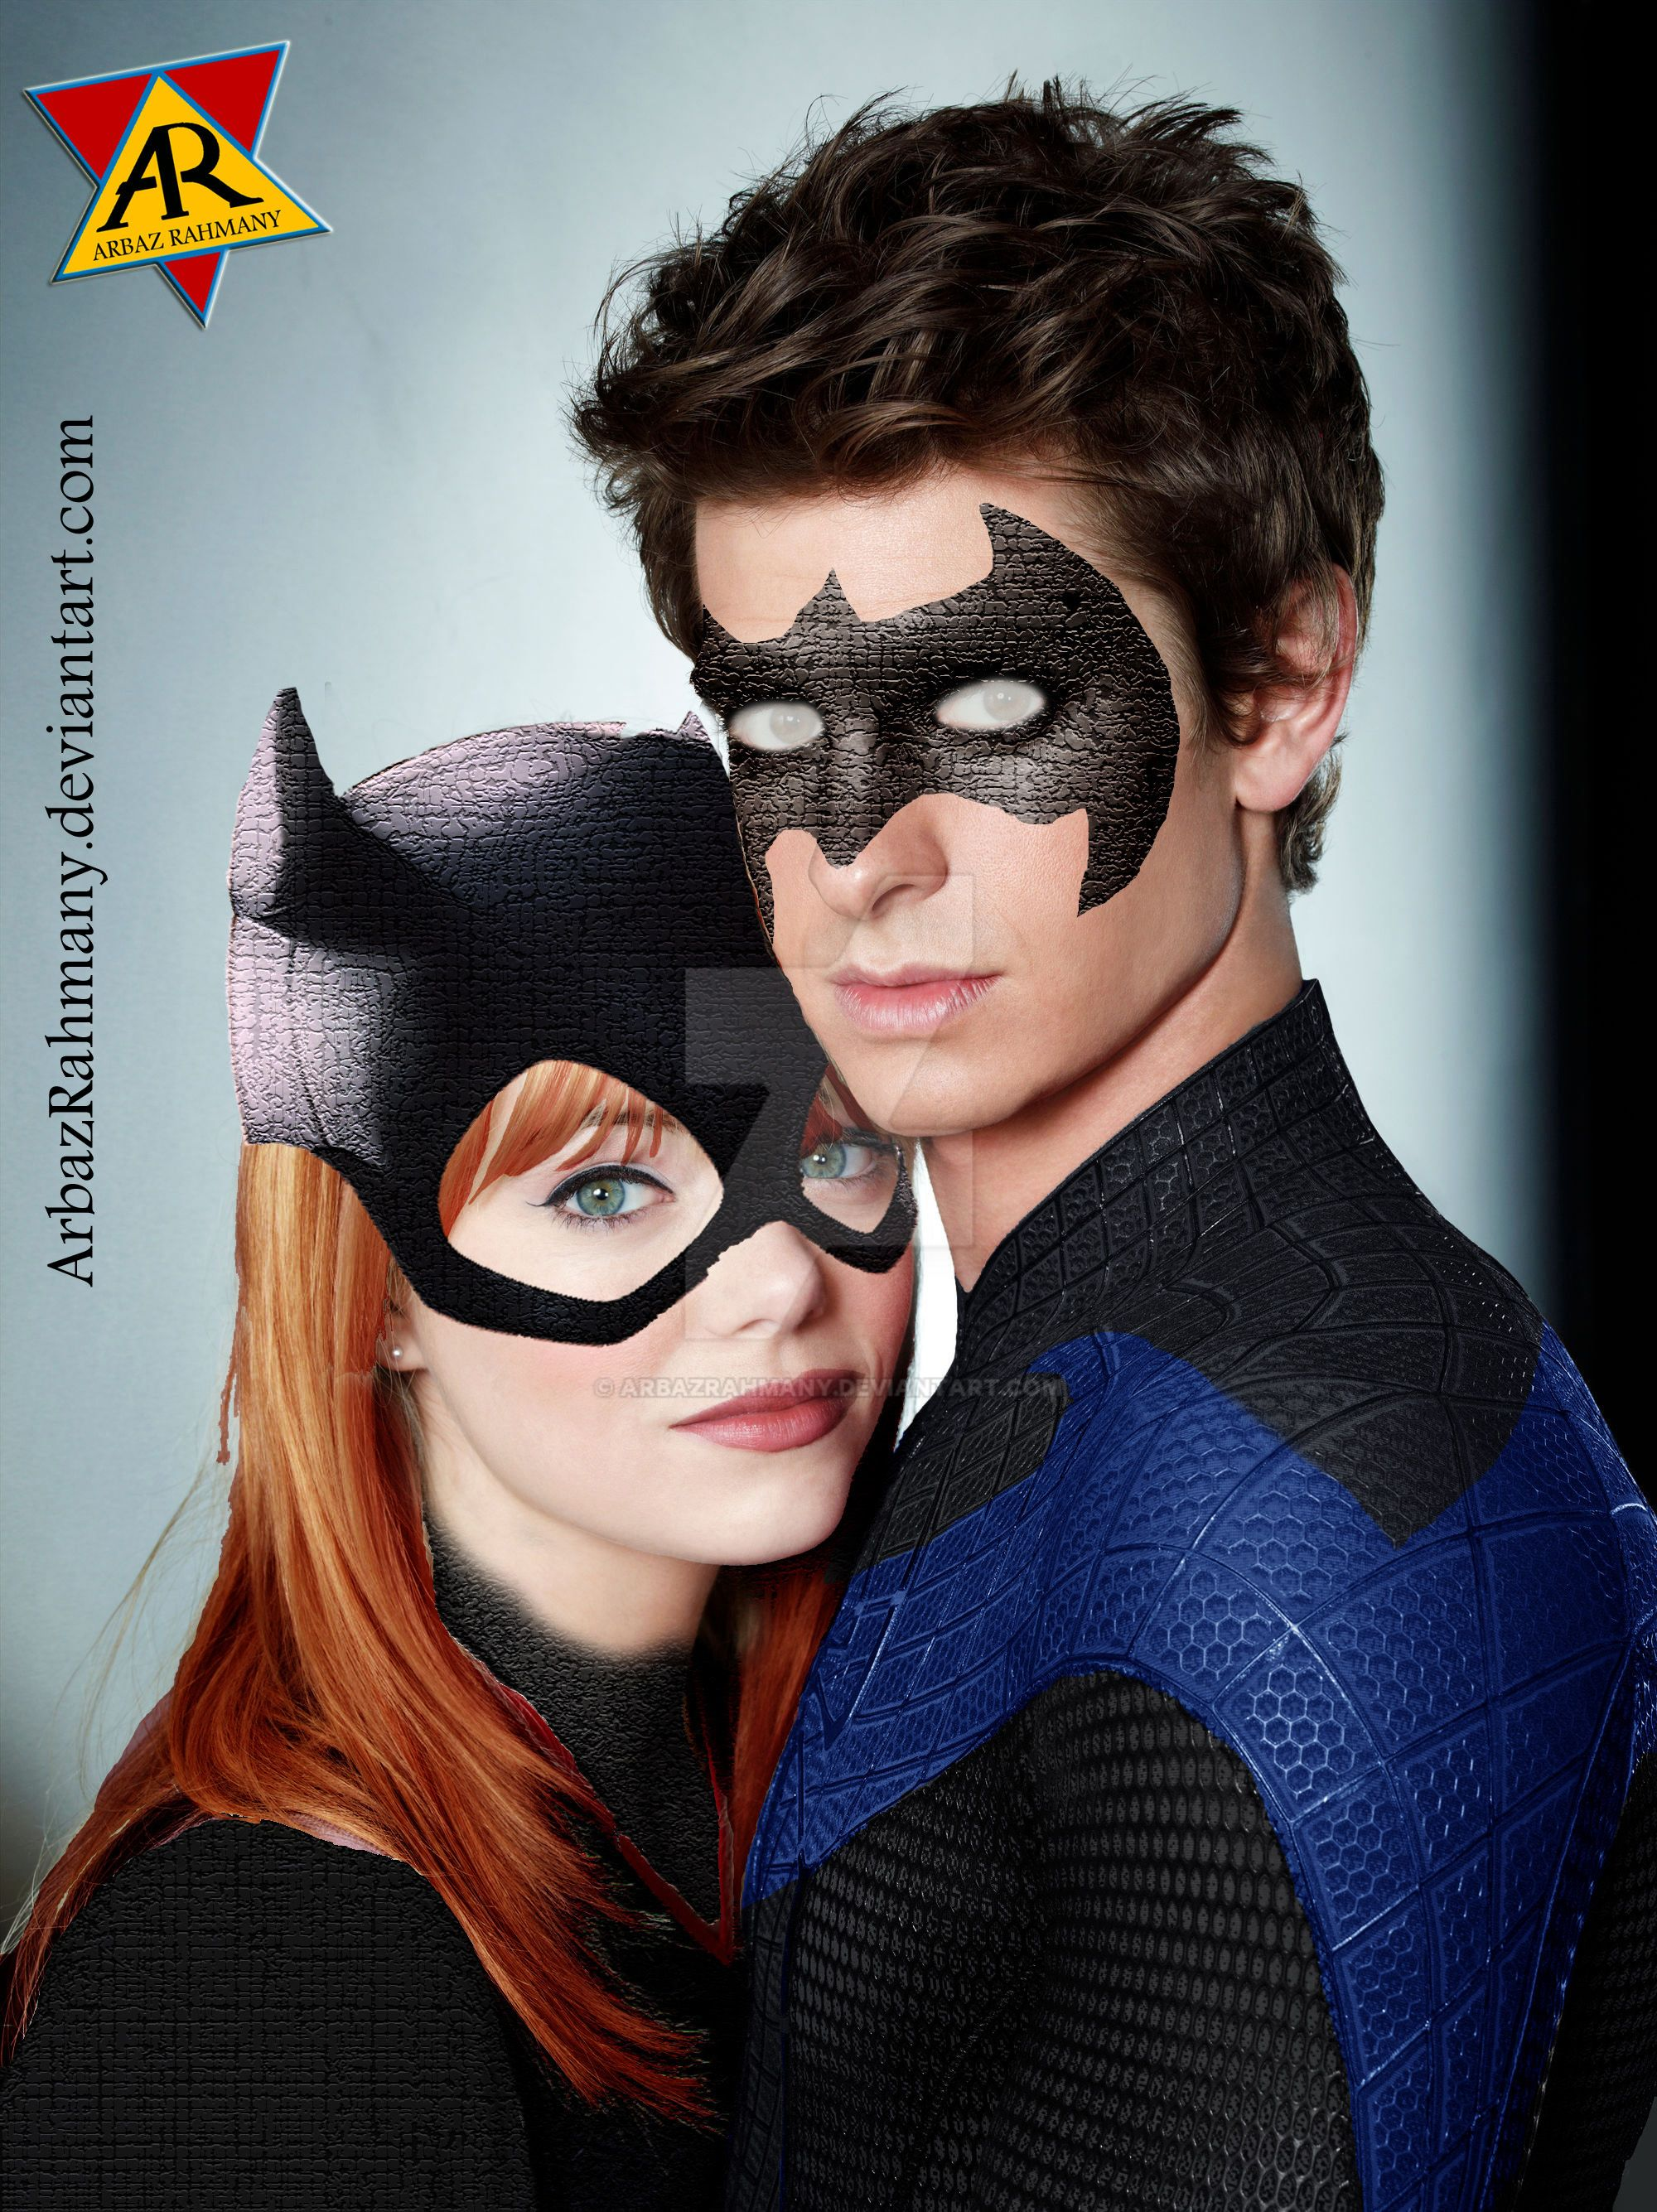 Andrew n Emma as Nightwing and Batgirl by arbazrahmany on DeviantArt